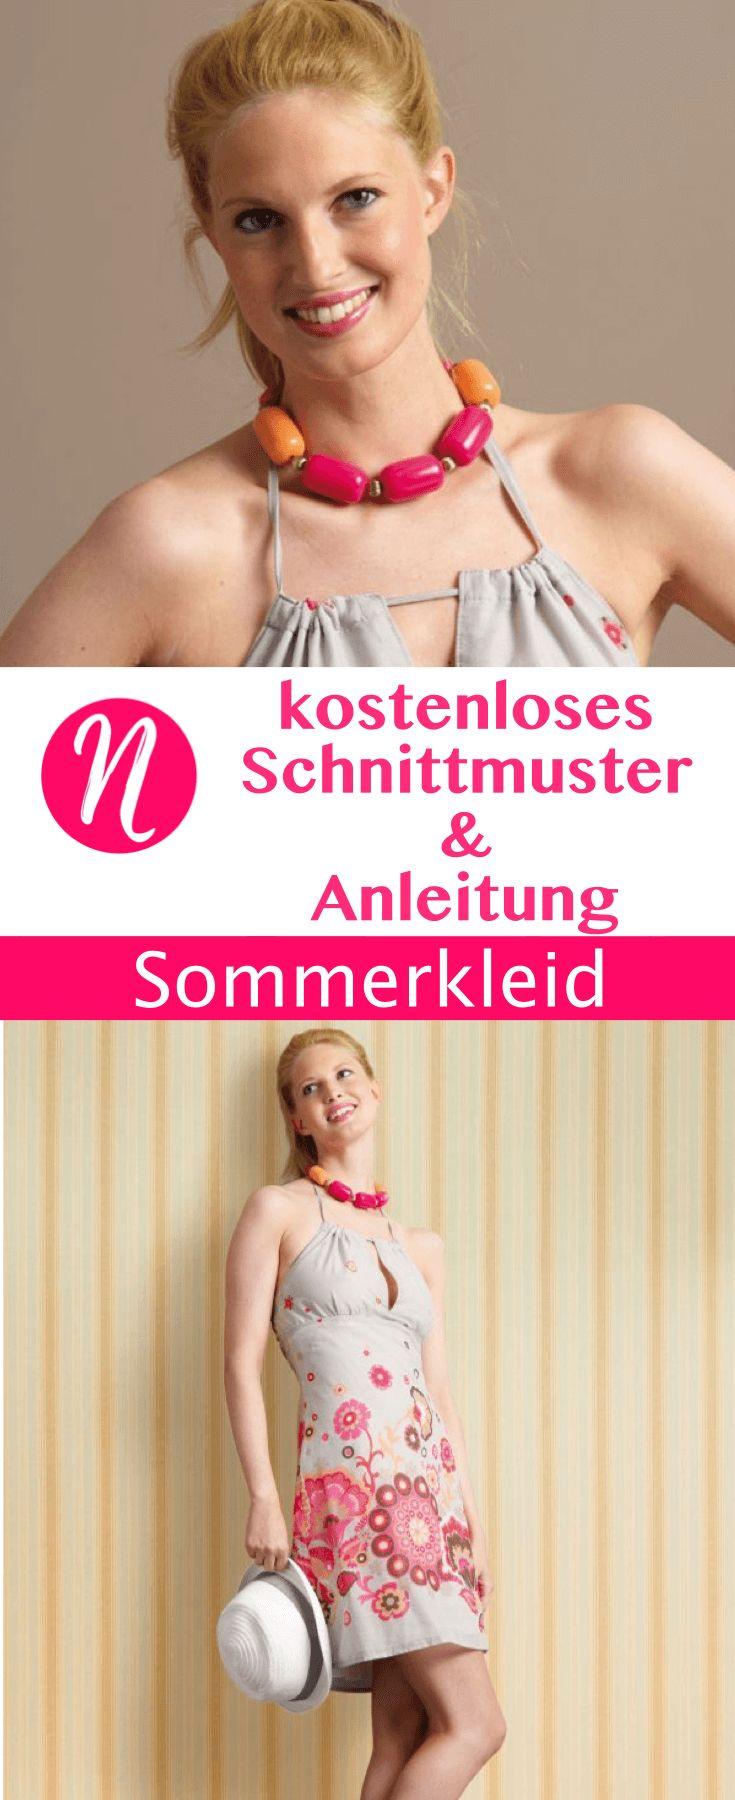 Schulterfeies Sommerkleid zum selber nähen. Gratis PDF-Schnittmuster zum Drucken in Gr. 34 - 46, mit Nähanleitung ✂ Jetzt Nähtalente.de besuchen ✂  Free sewing pattern for a summer day dress in sizes 34 - 46